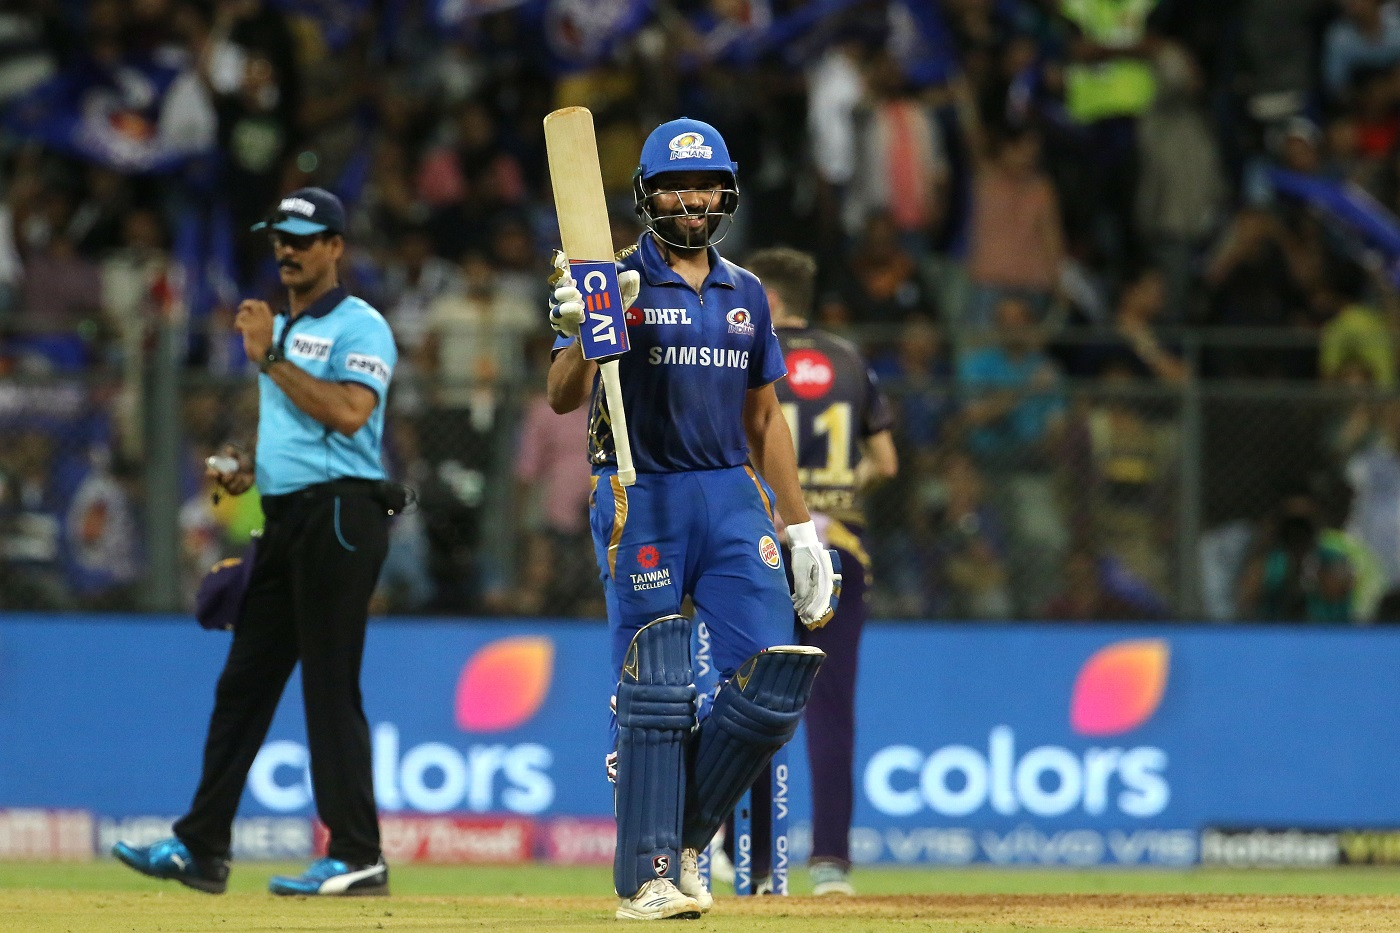 IPL 2019: Dinesh Karthik Vouches to Comeback Stronger in the Next Edition 1